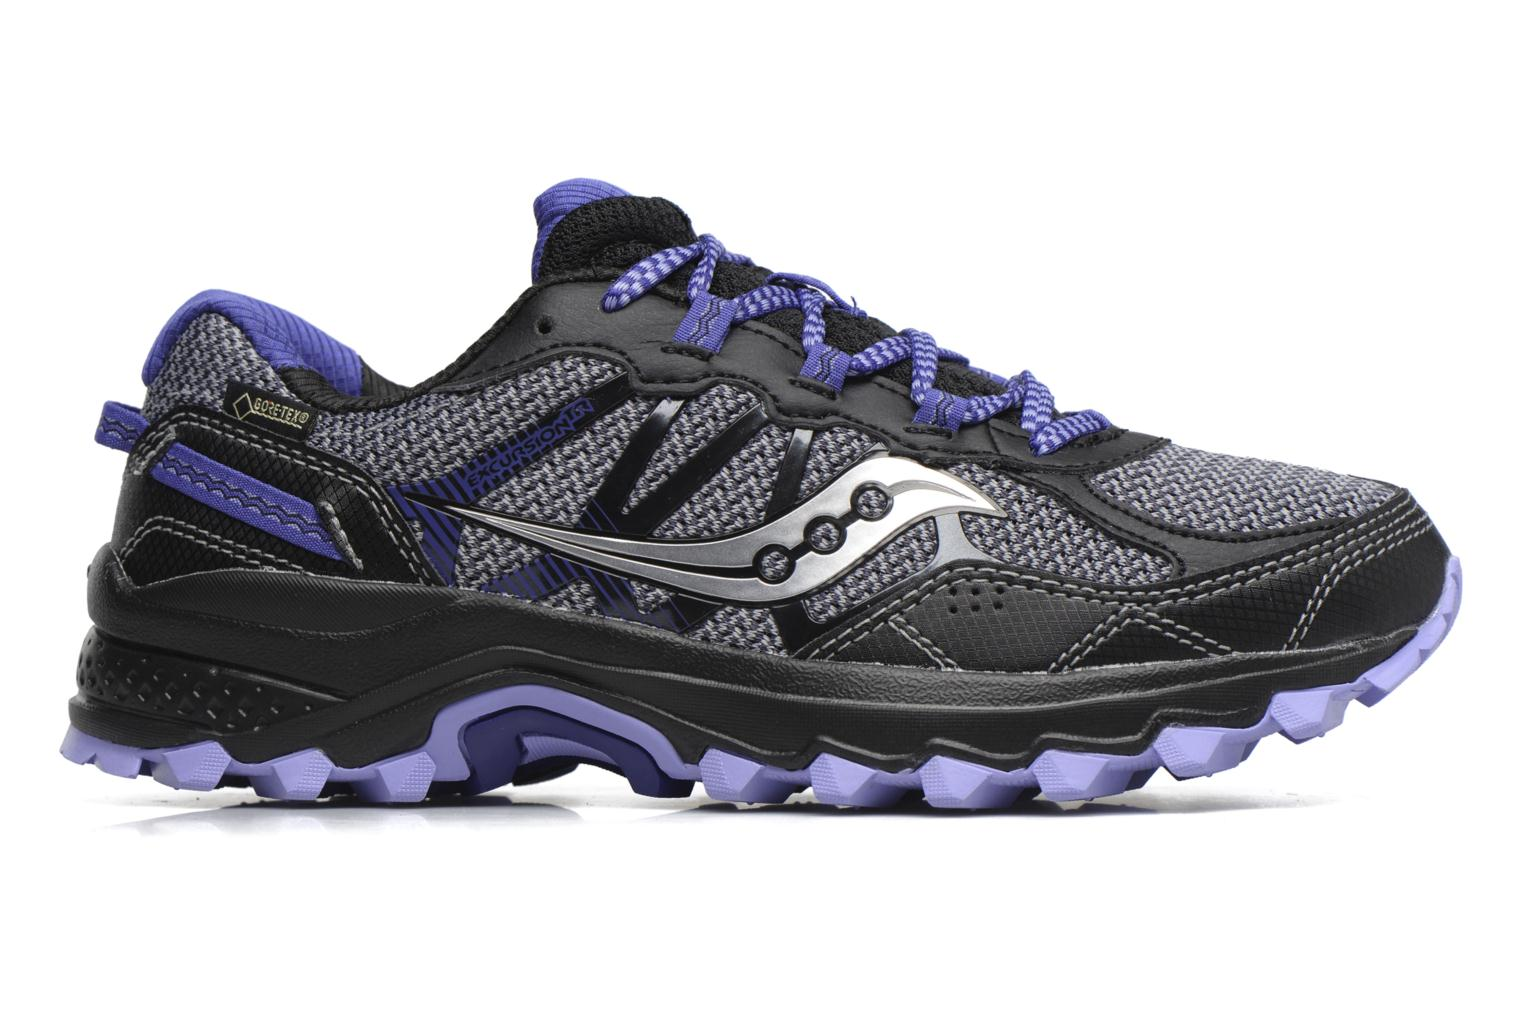 Excursion Tr11 Gtx W Grey/Black/Purple